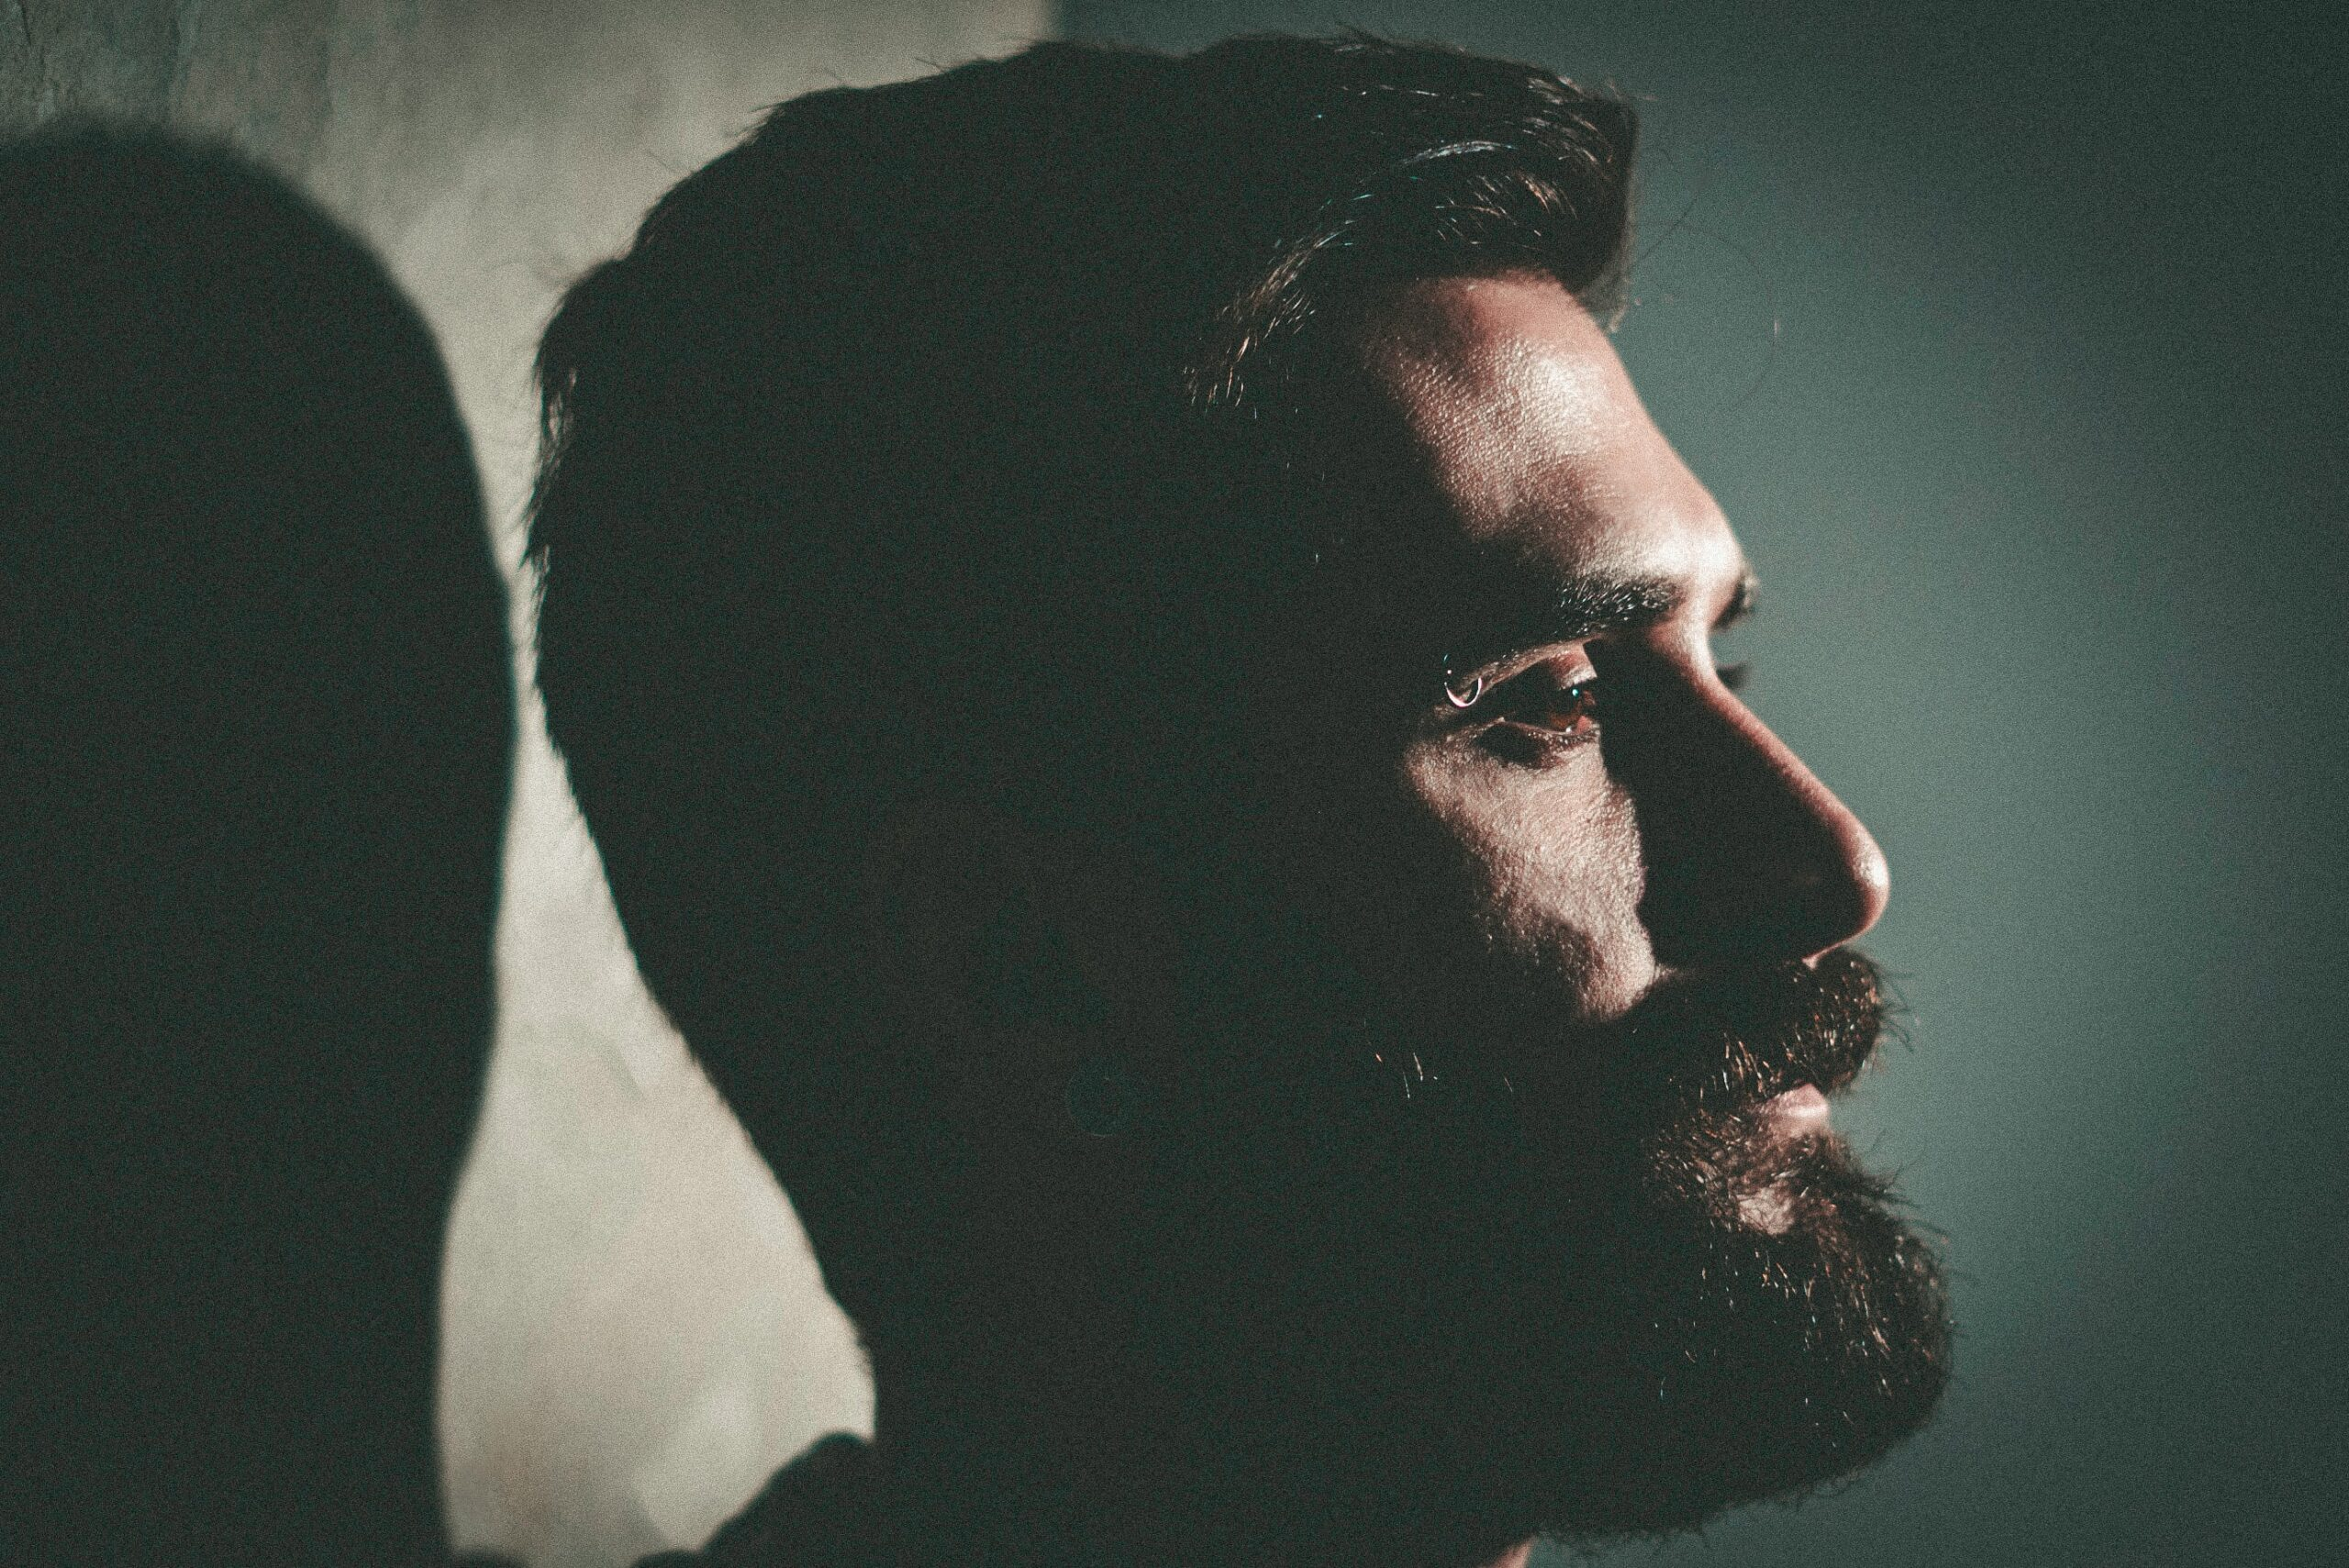 Depression in Men After a Breakup (5 ways to cope)